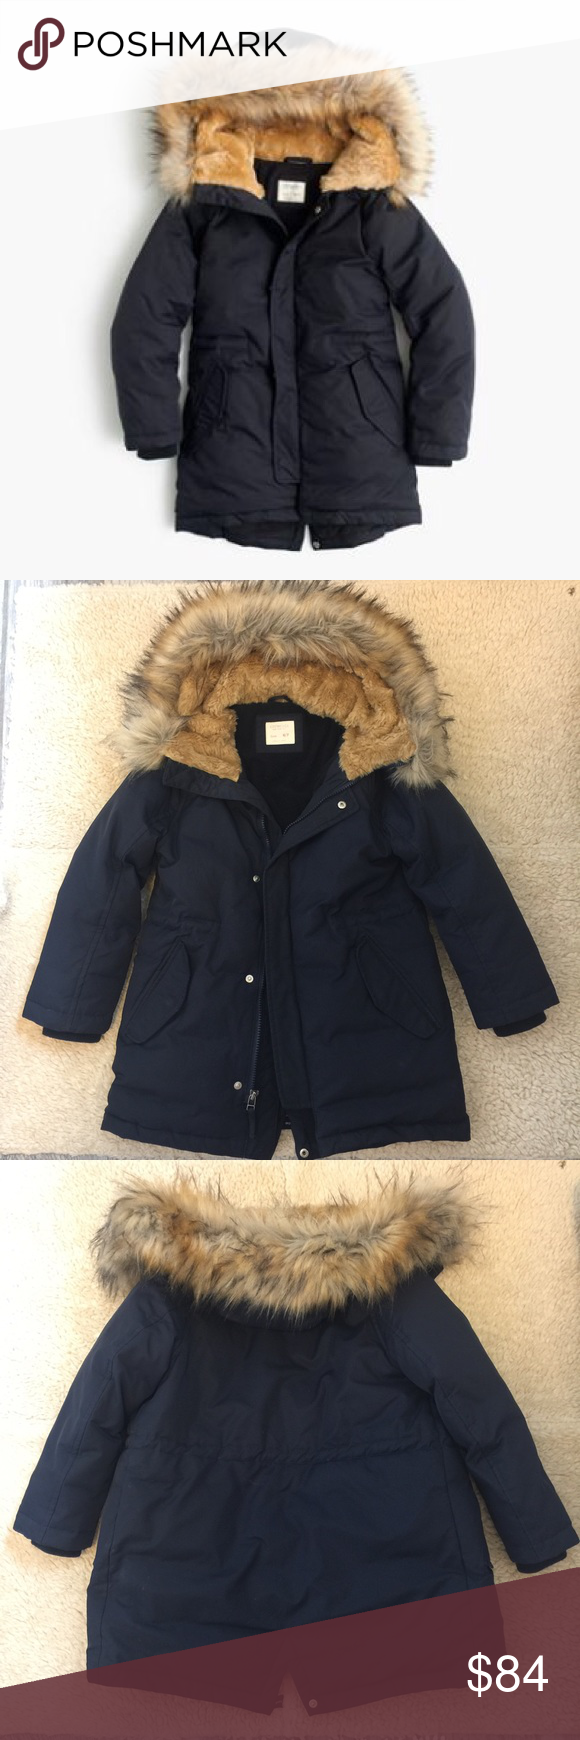 Crewcuts Fishtail Parka Get ready for next winter with this fishtail parka! The parka for any cold-weather adventure—this fleece-lined puffer parka has a fill power of 450, meaning it's really warm. This is in like new condition: not one stain or tear. Zipper works perfectly as well. Also has thumb holes in cuffs. I hate that my son has outgrown this!!! He had gotten SO MANY compliments on it. Color Navy. Size 6/7. Get it before it's gone! J. Crew Jackets & Coats